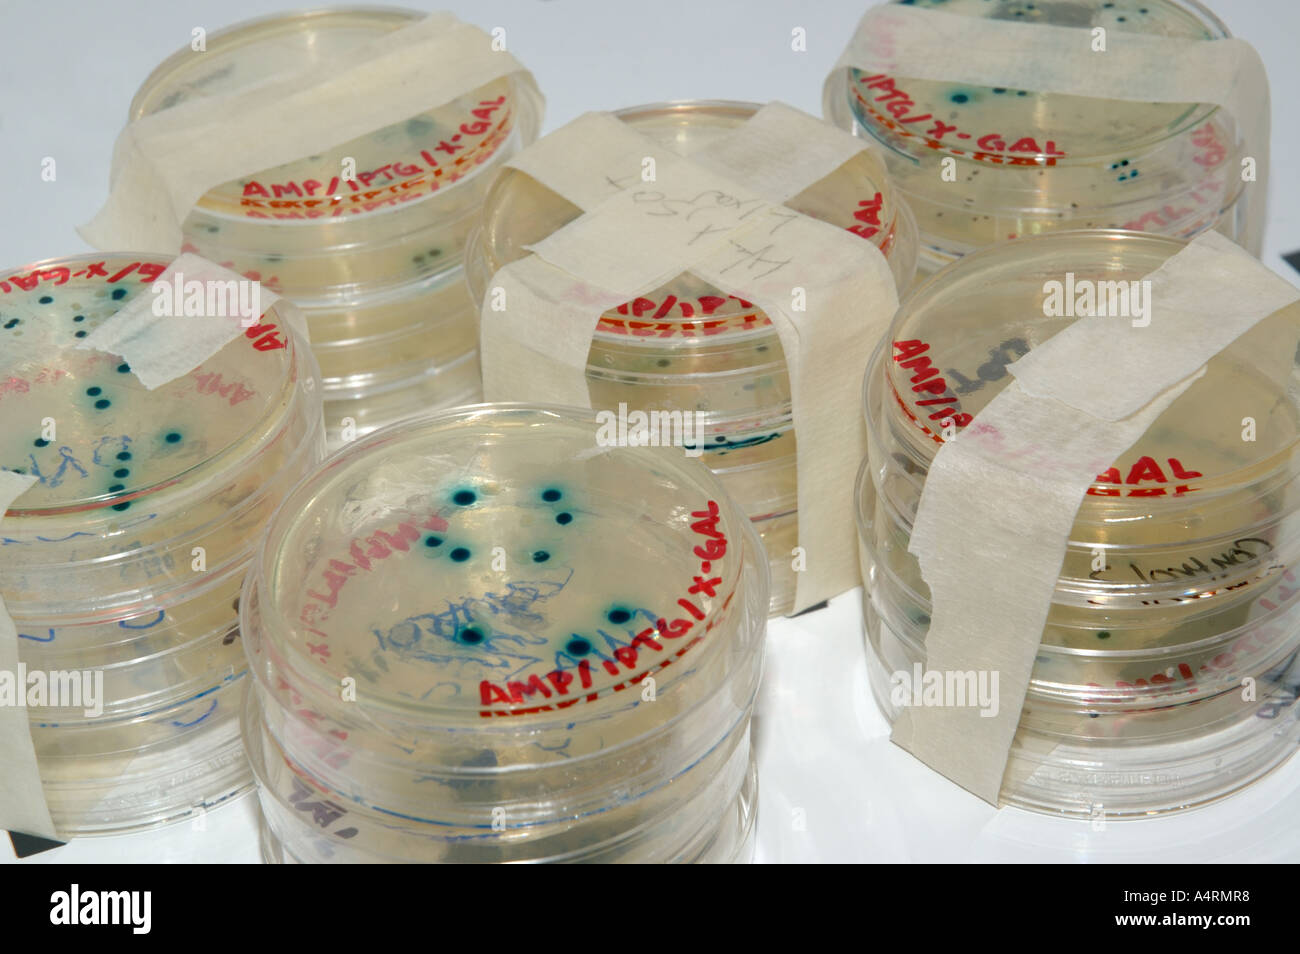 Bacteria culture plates petri dishes with blue transformation colonies in incubator - Stock Image